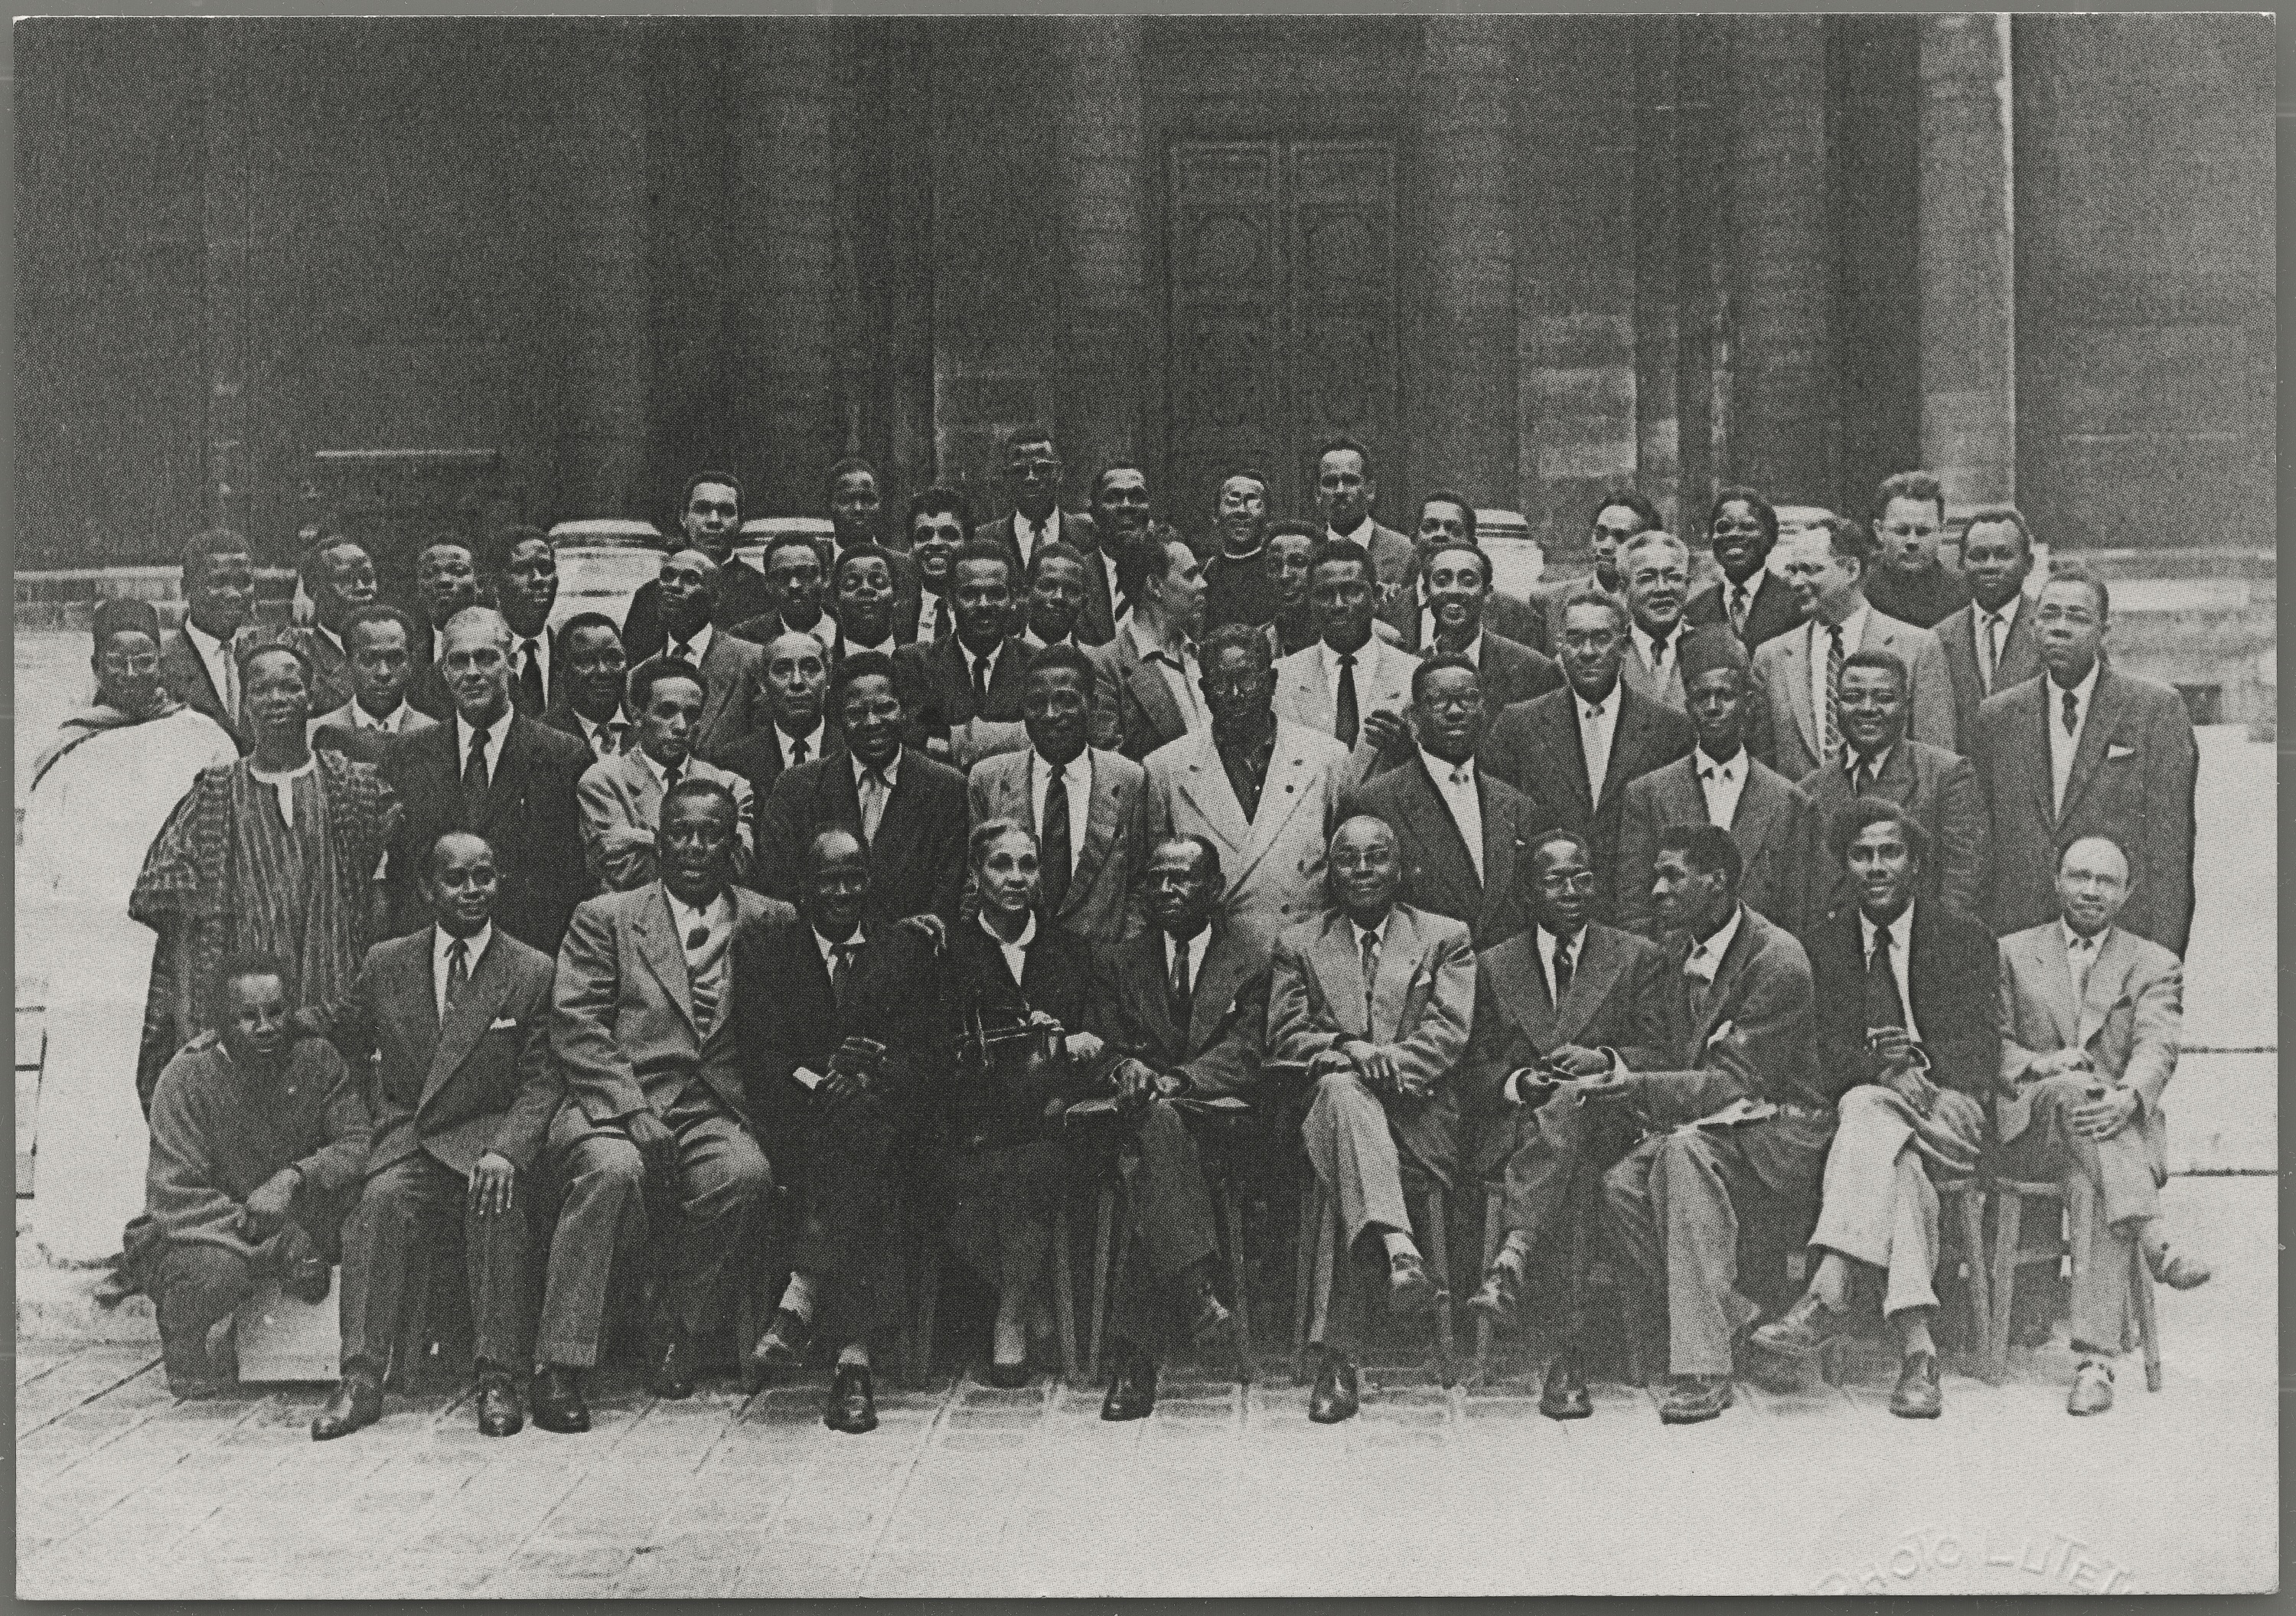 Attendees of the 1956 Congress of Black Writers and Artists